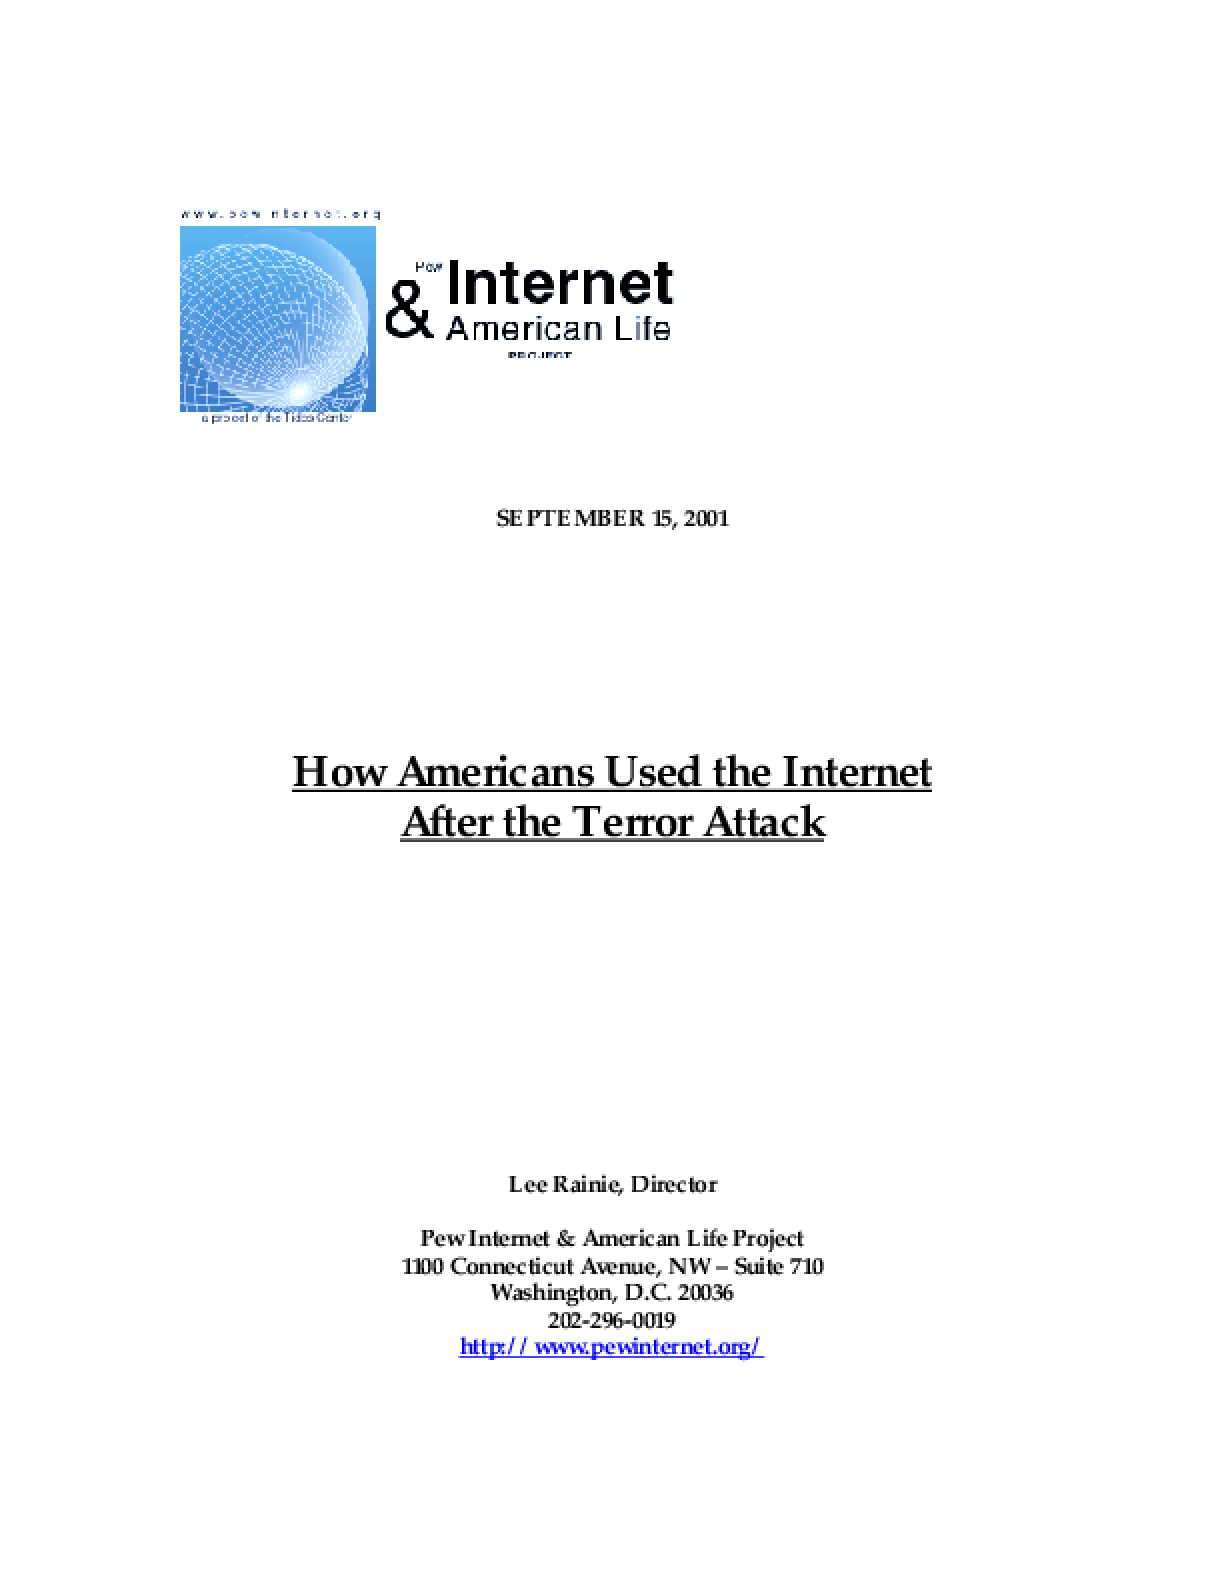 How Americans Used the Internet After the Terror Attack